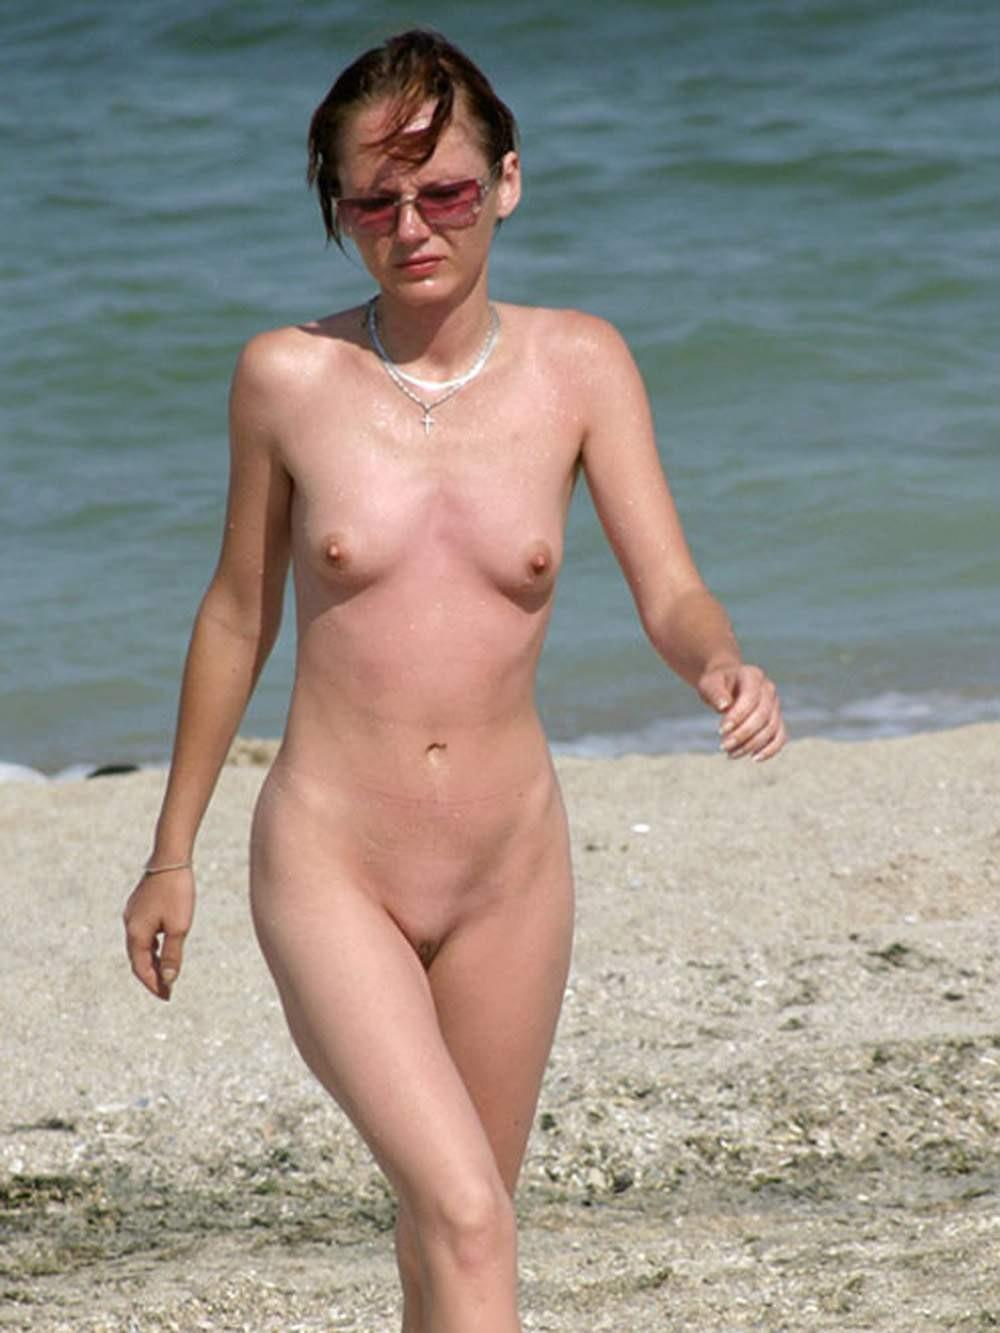 Young nudist takes a stroll in the sand